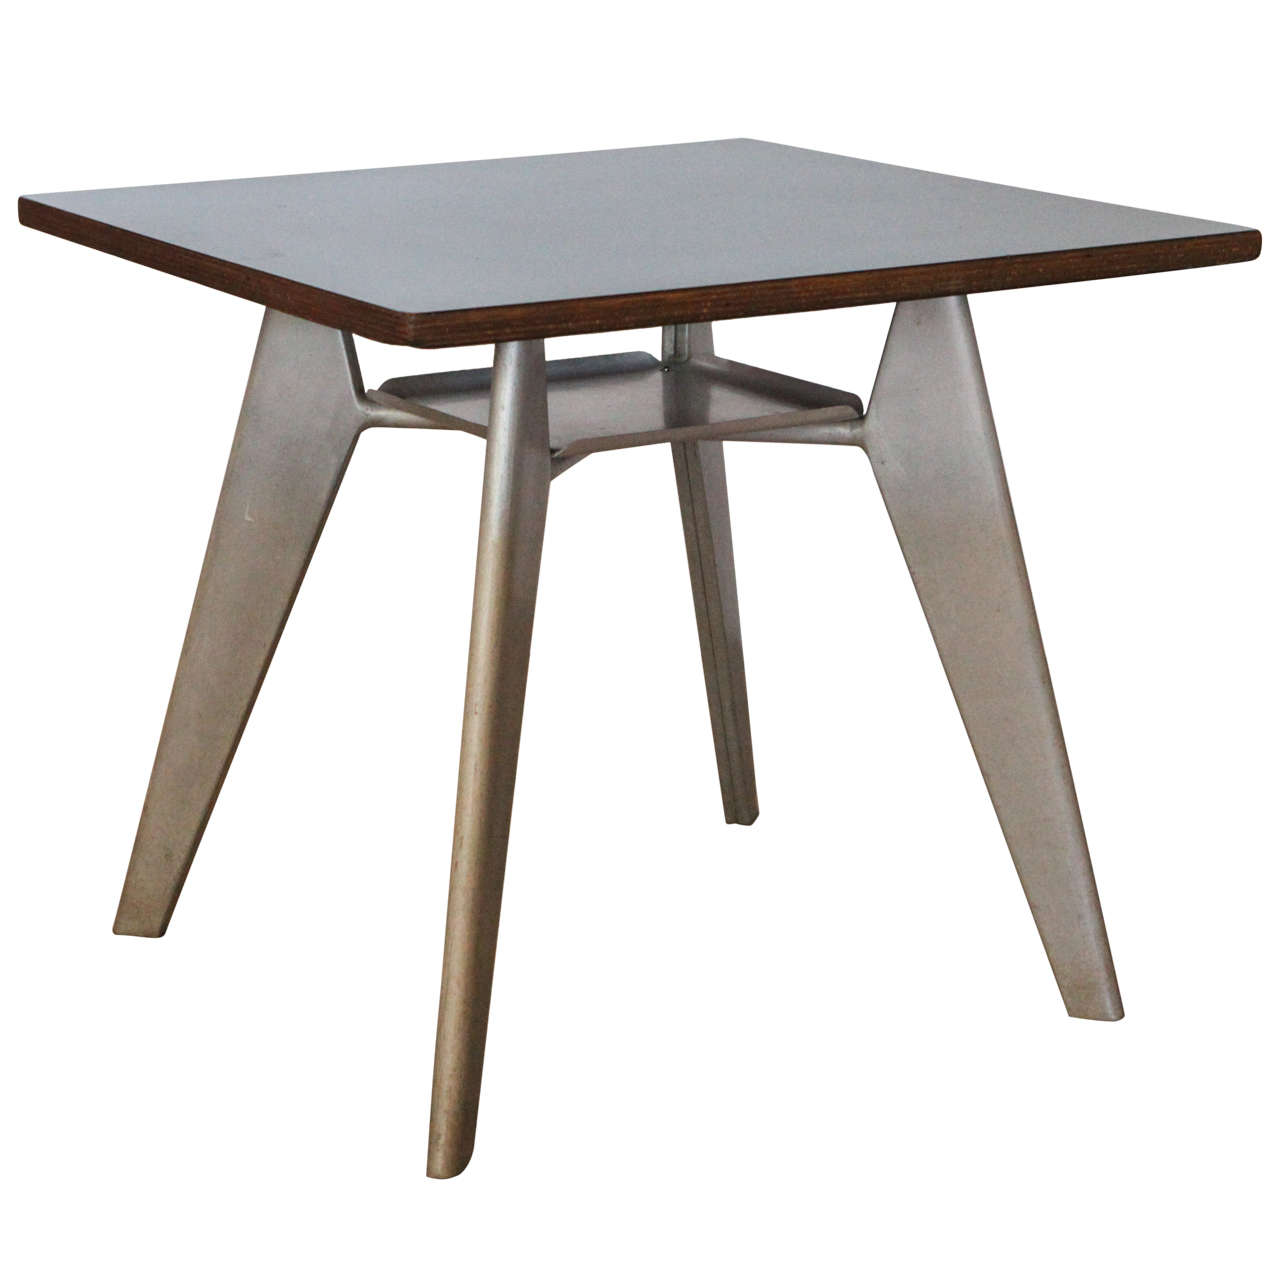 Jean prouve gueridon cafeteria table france 1950 at 1stdibs - Table basse jean prouve ...